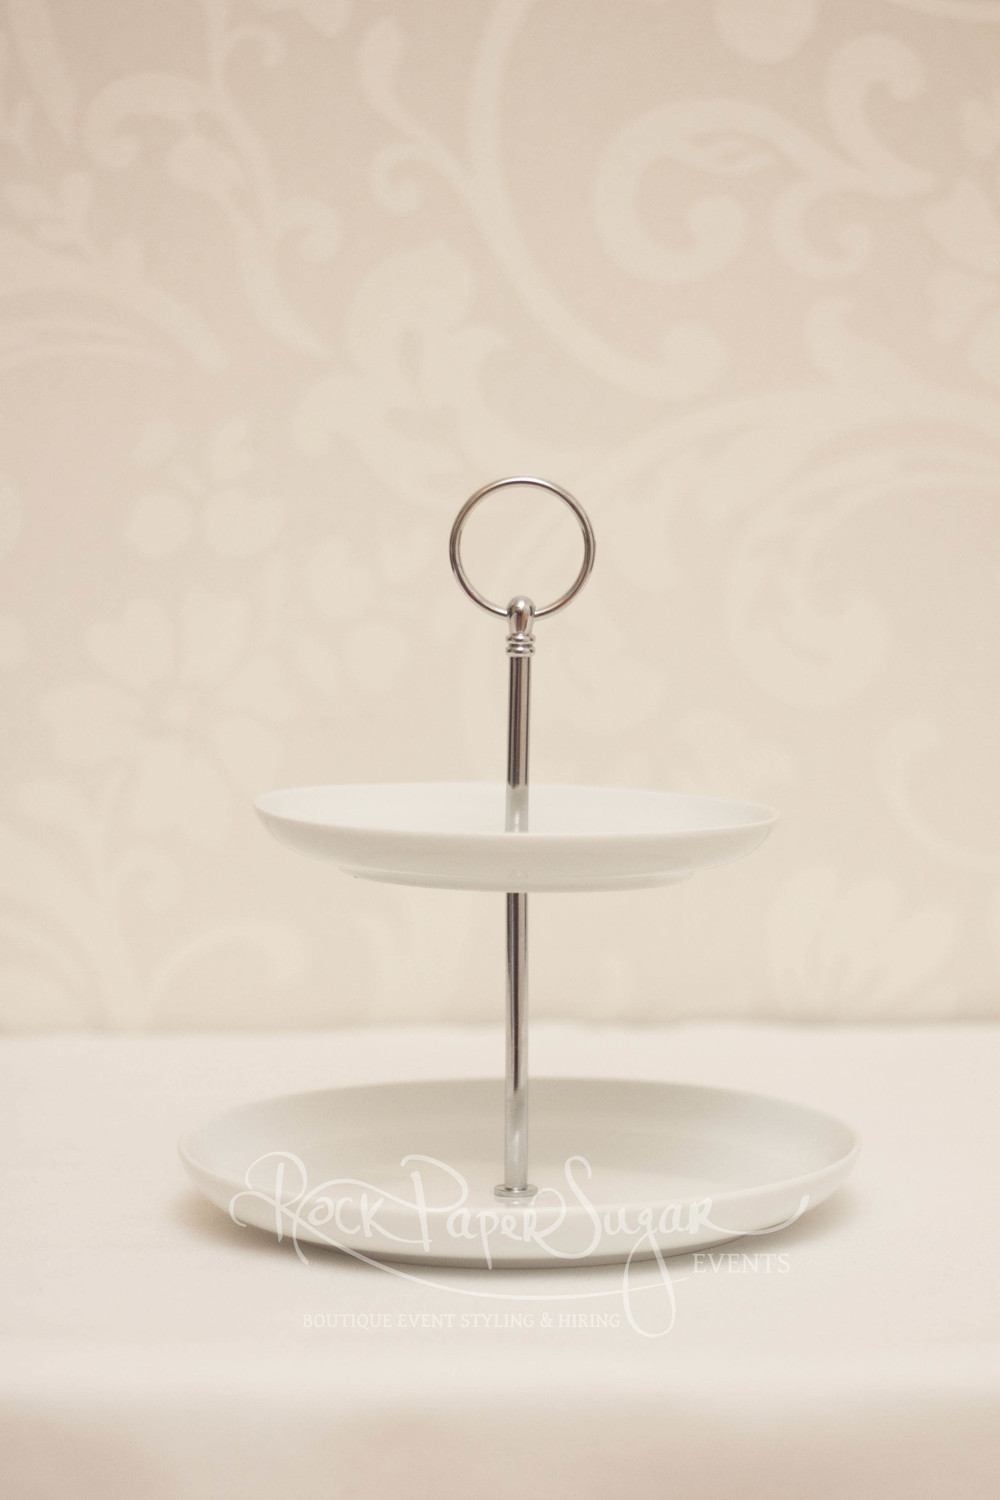 Rock Paper Sugar Events Cake Stands 015.jpg